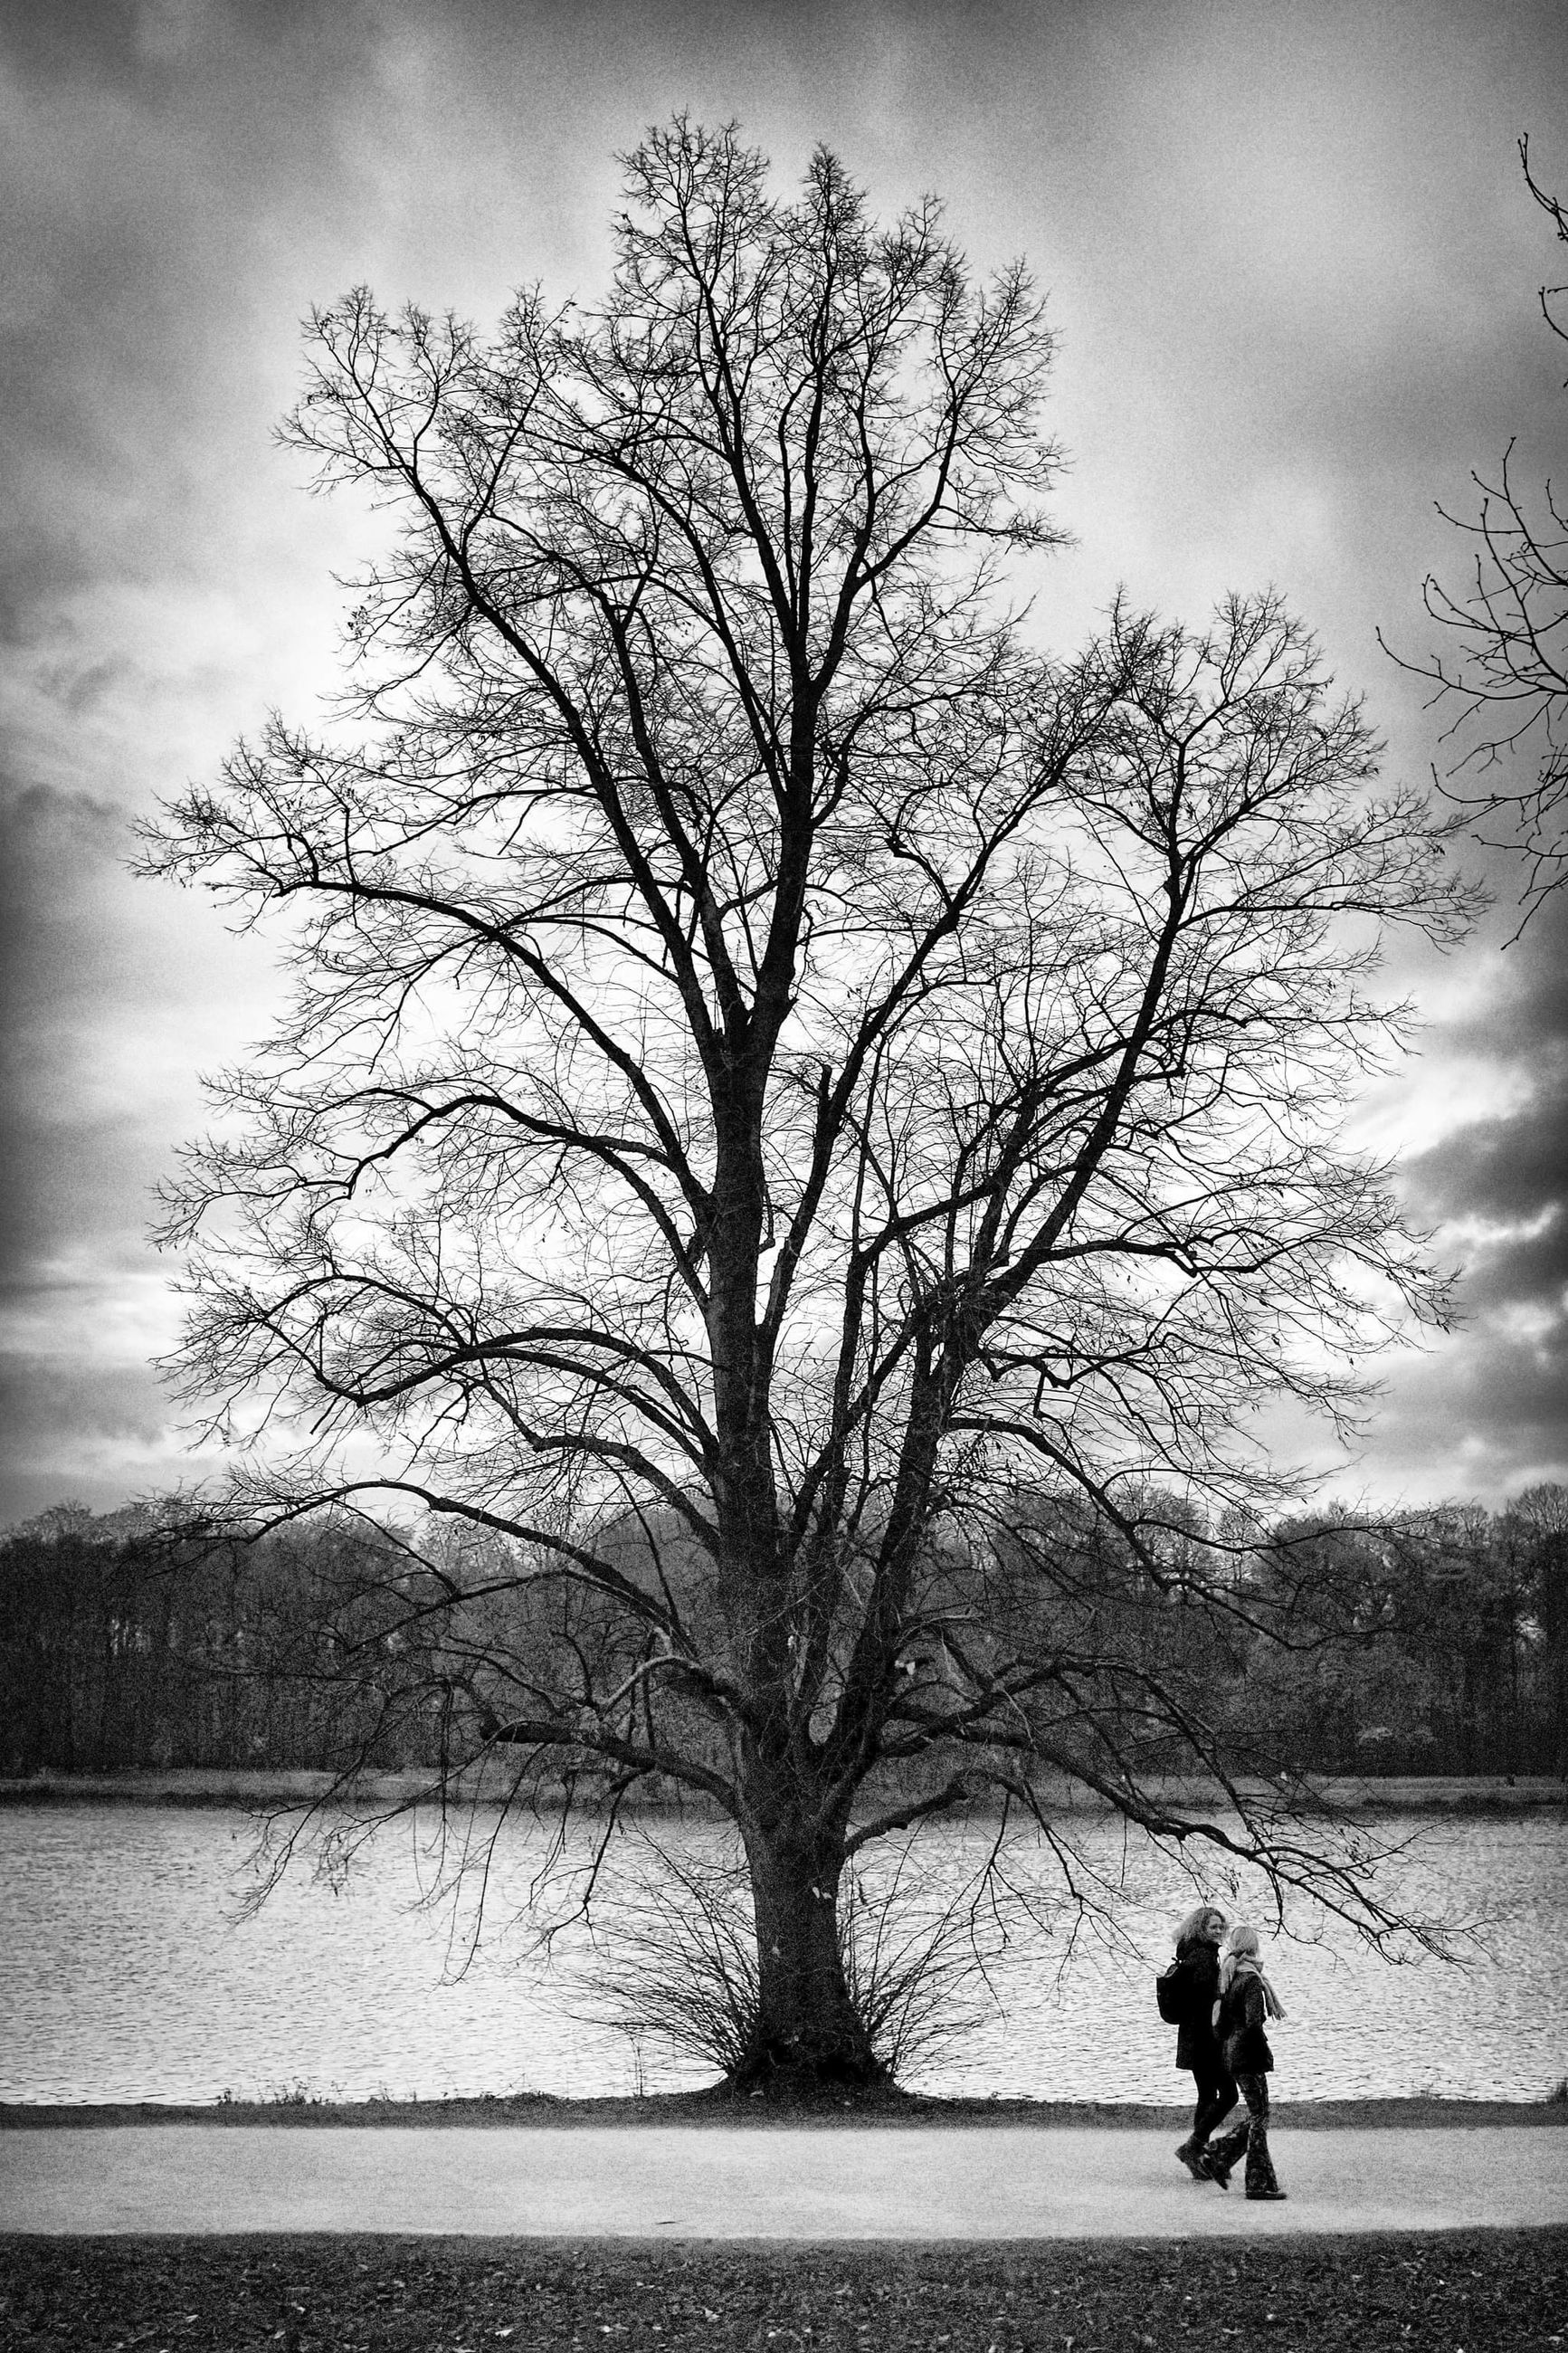 tree, bare tree, black and white, plant, sky, nature, monochrome, monochrome photography, cloud, branch, one person, morning, silhouette, water, men, beauty in nature, winter, full length, outdoors, leisure activity, lifestyles, day, tranquility, scenics - nature, black, land, adult, darkness, lake, tranquil scene, environment, rear view, walking, transportation, tree trunk, trunk